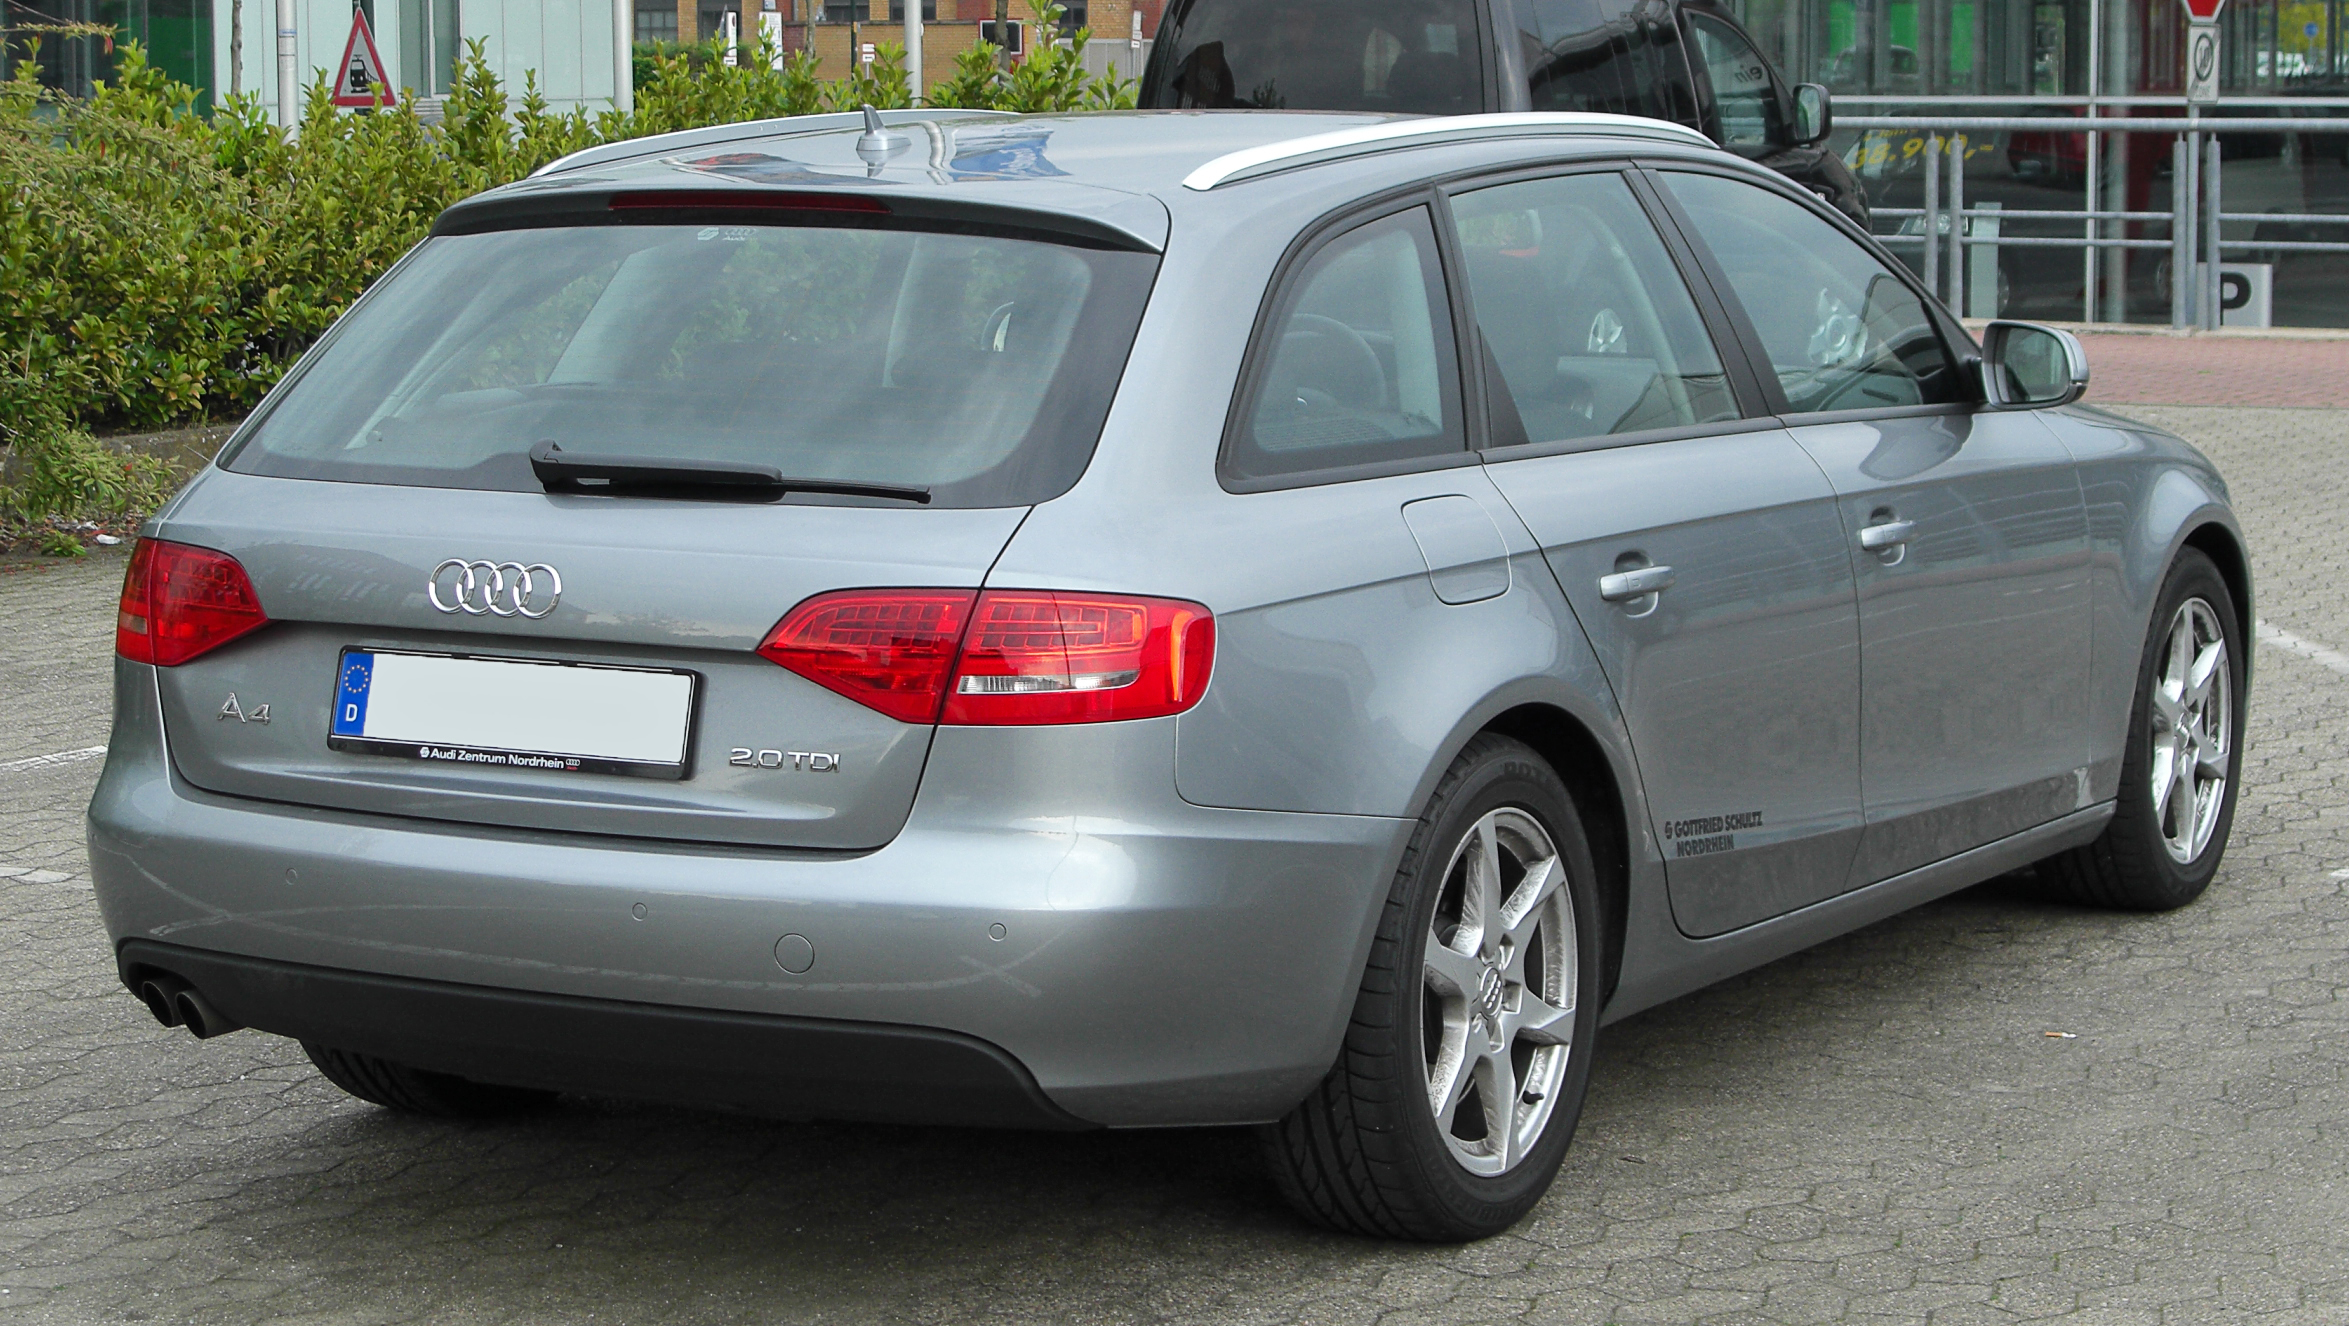 2008 audi a4 avant b8 pictures information and specs. Black Bedroom Furniture Sets. Home Design Ideas